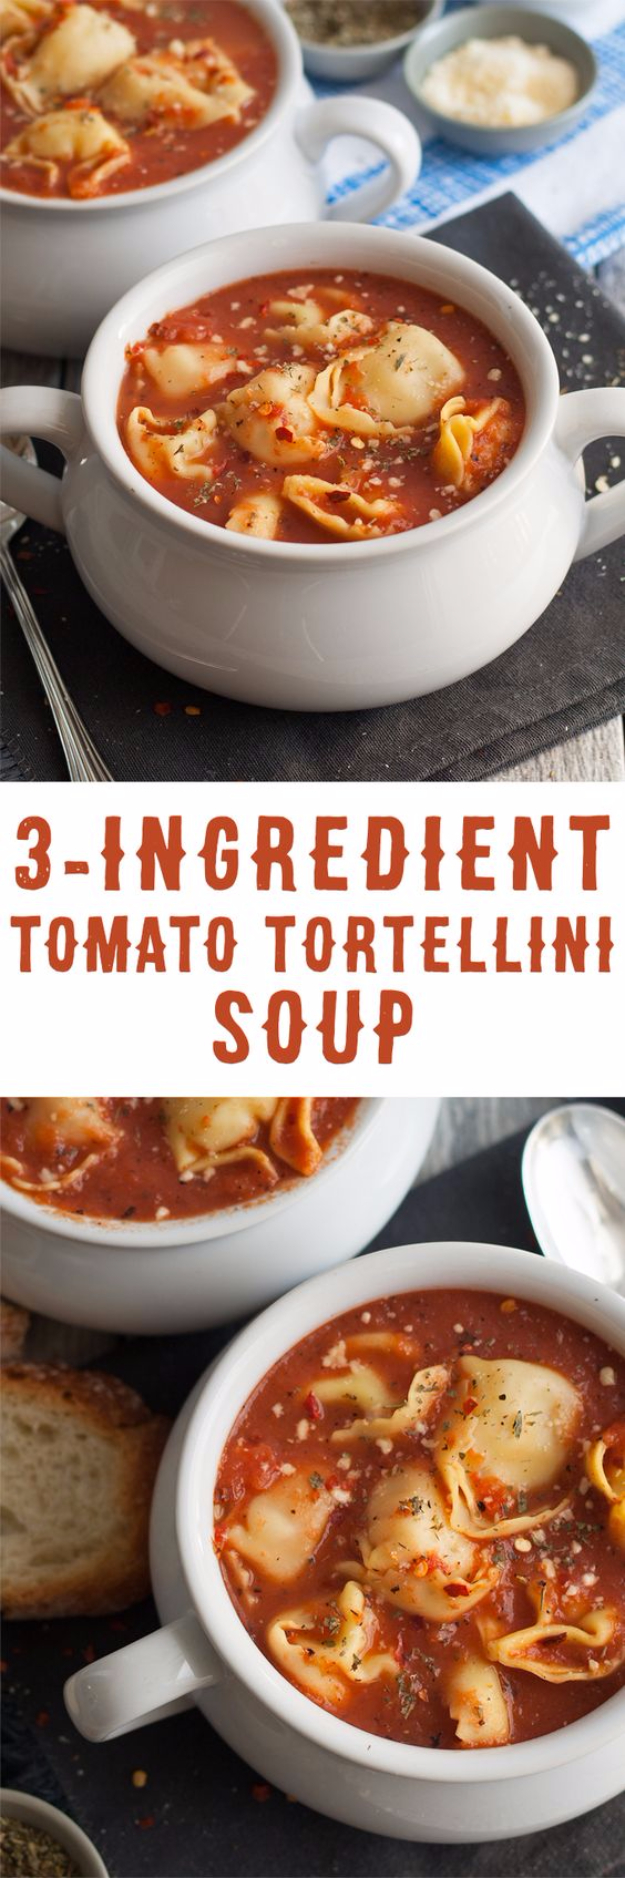 Easy Three Ingredient Soup Recipes -3 Ingredient Tomato Tortellini Soup - Quick And Healthy 3 Ingredients Recipe Ideas for Breakfast, Lunch, Dinner, Appetizers, Snacks and Desserts - Cookies, Chicken, Crockpot Ideas, Baking and Microwave Recipes and Tutorials #easyrecipes #quickrecipes